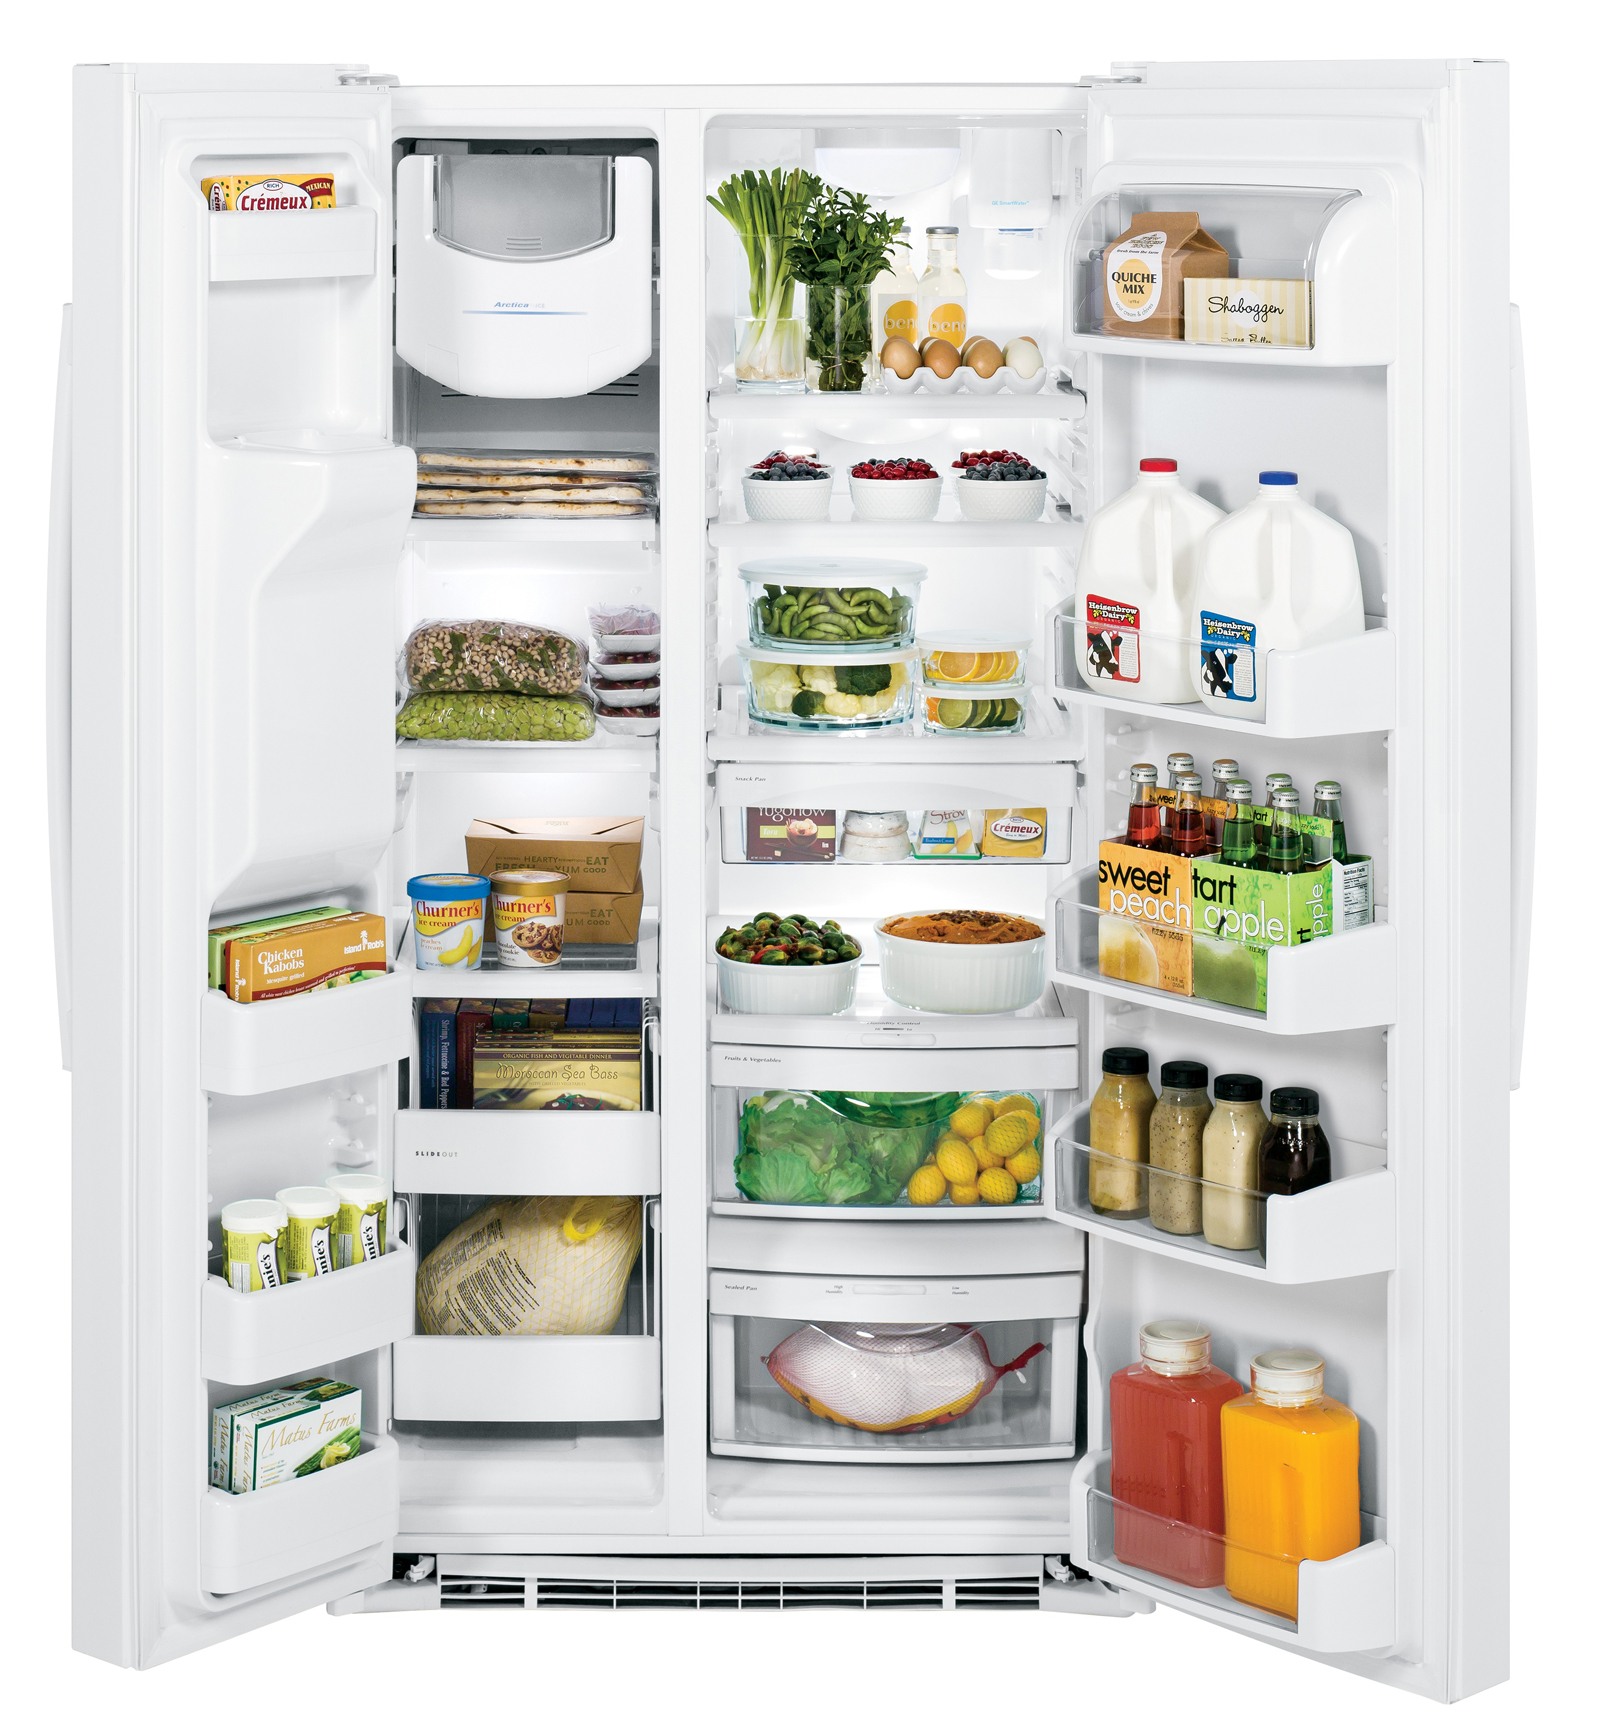 GE Appliances GSE25HGHWW 25.4 cu. ft. Side-By-Side Refrigerator - White